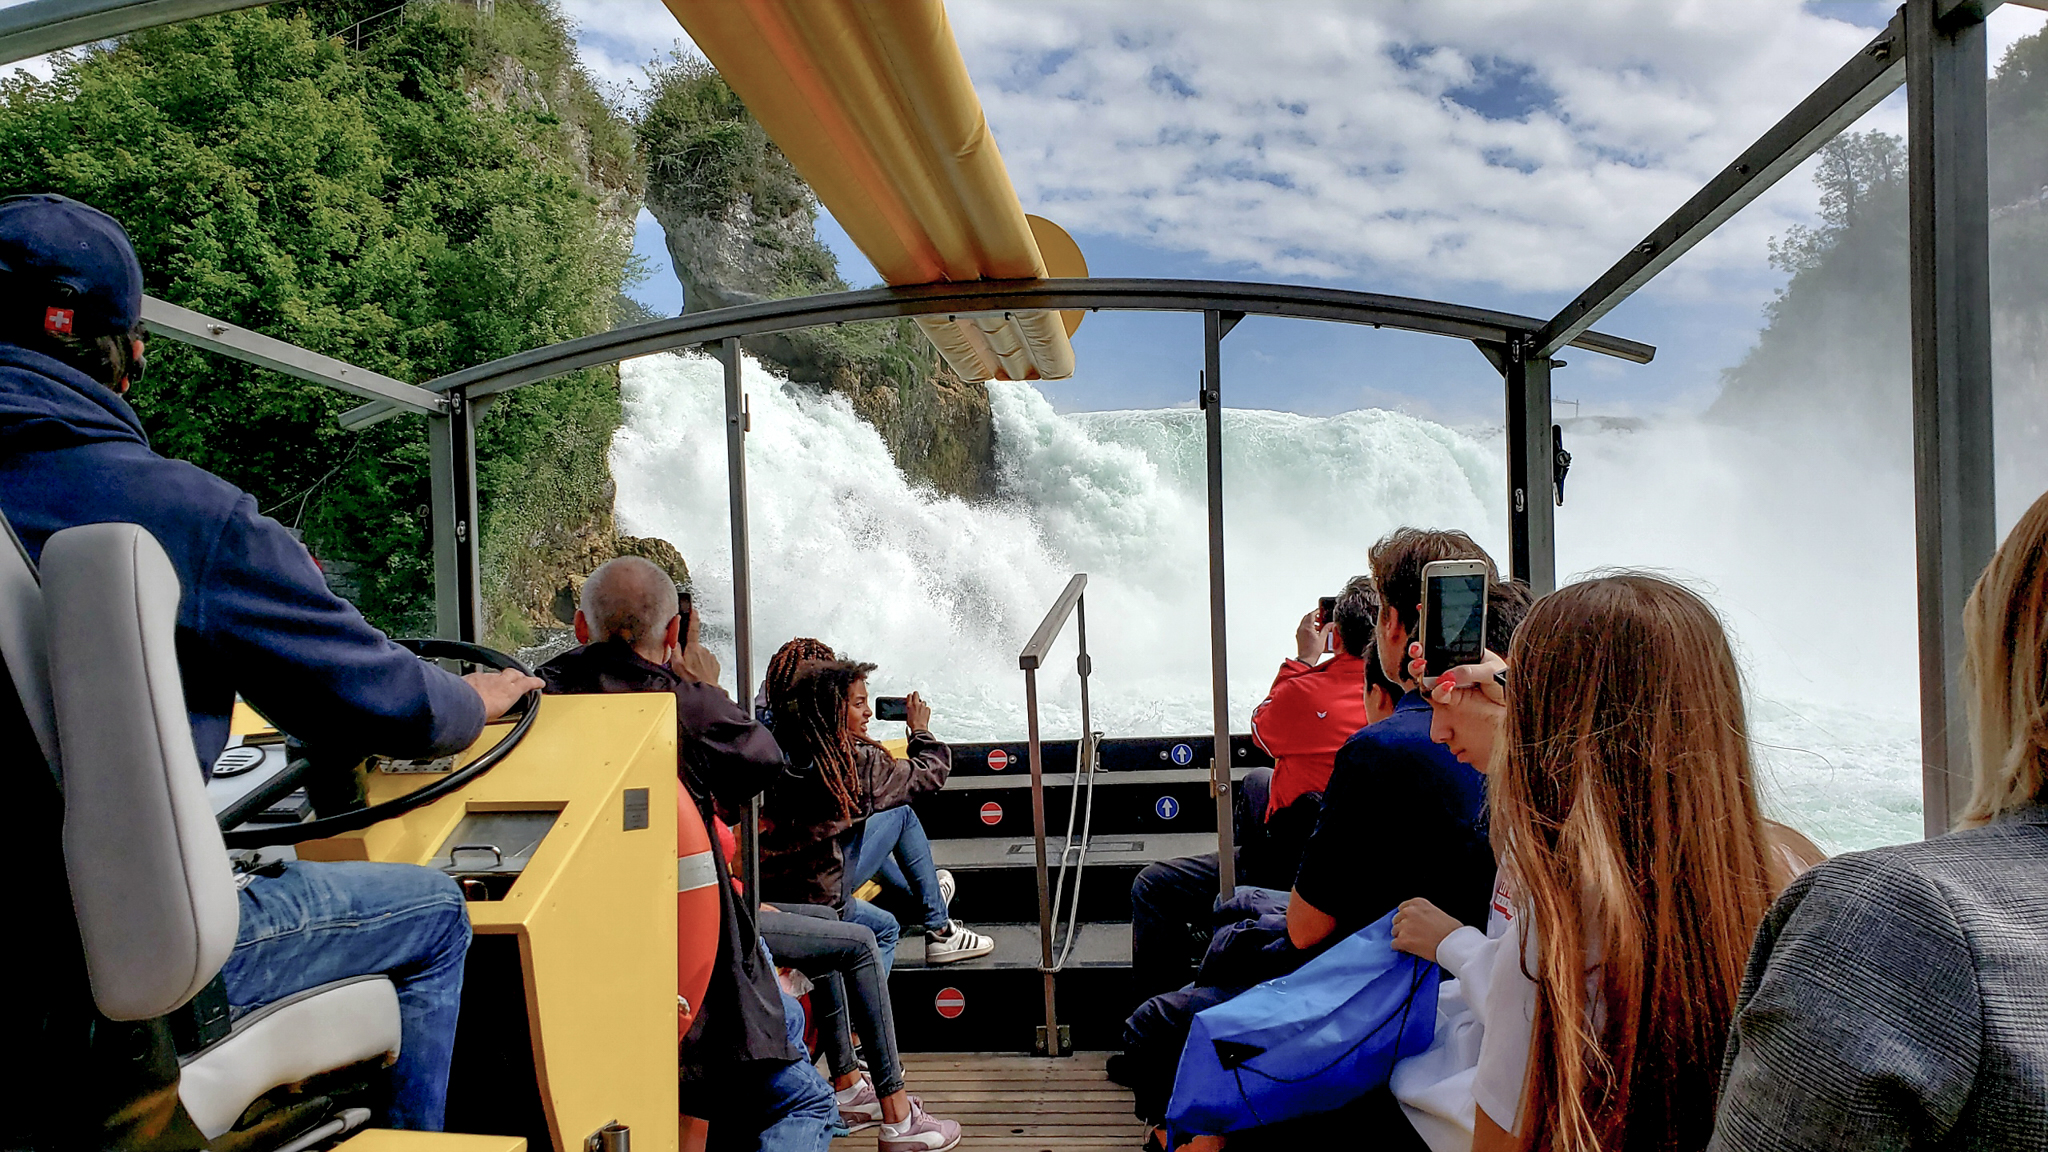 10-August-2019 To the brink of Rhein Falls